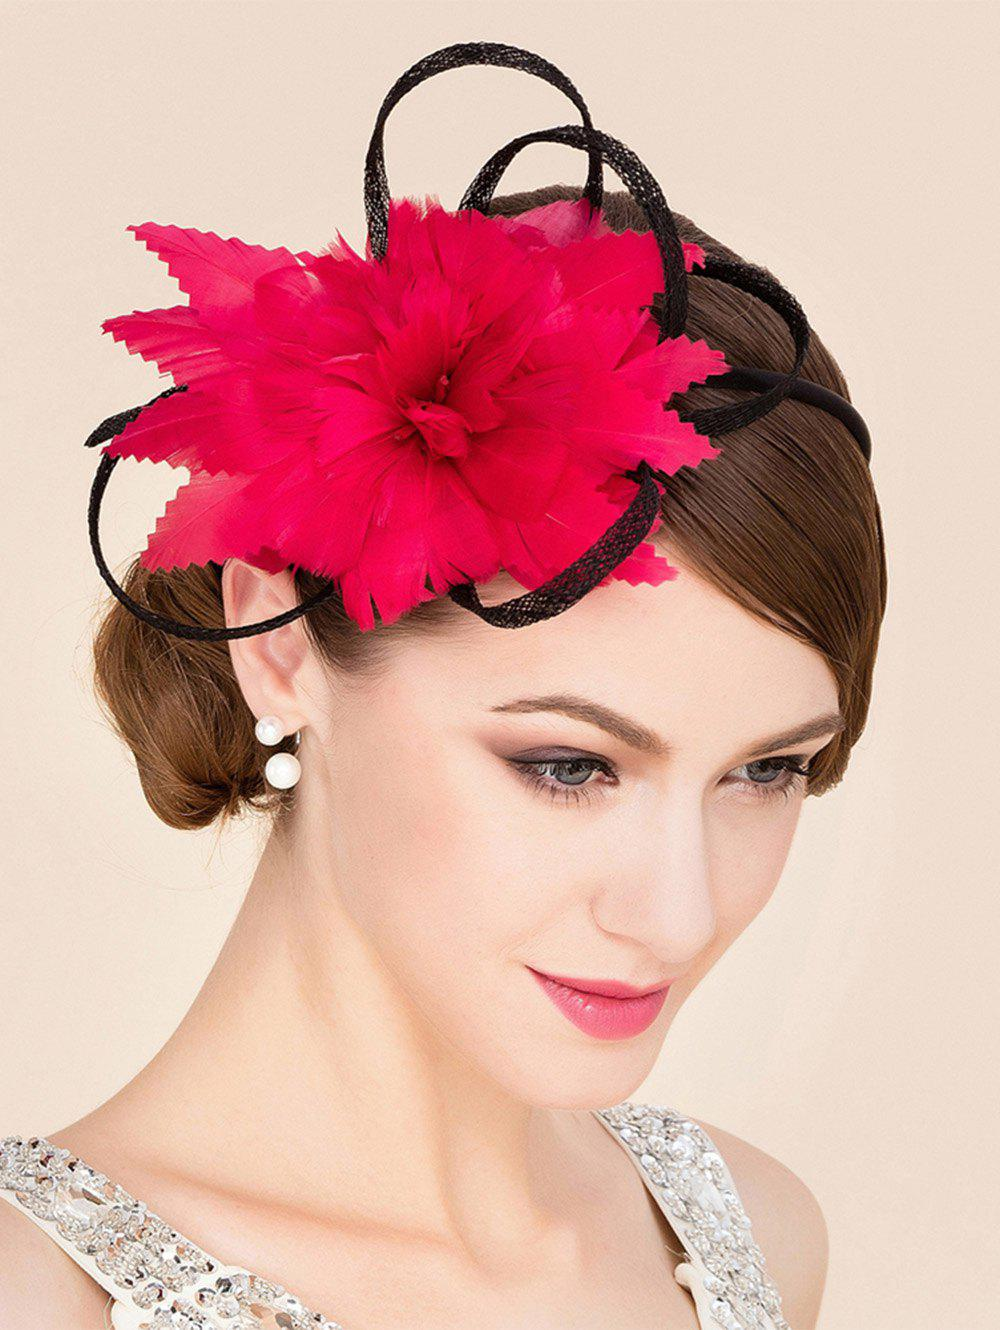 Elegant Lady Red Feathered Flower Bridal Fascinator Wedding Tea Party Cocktails Hat - RED